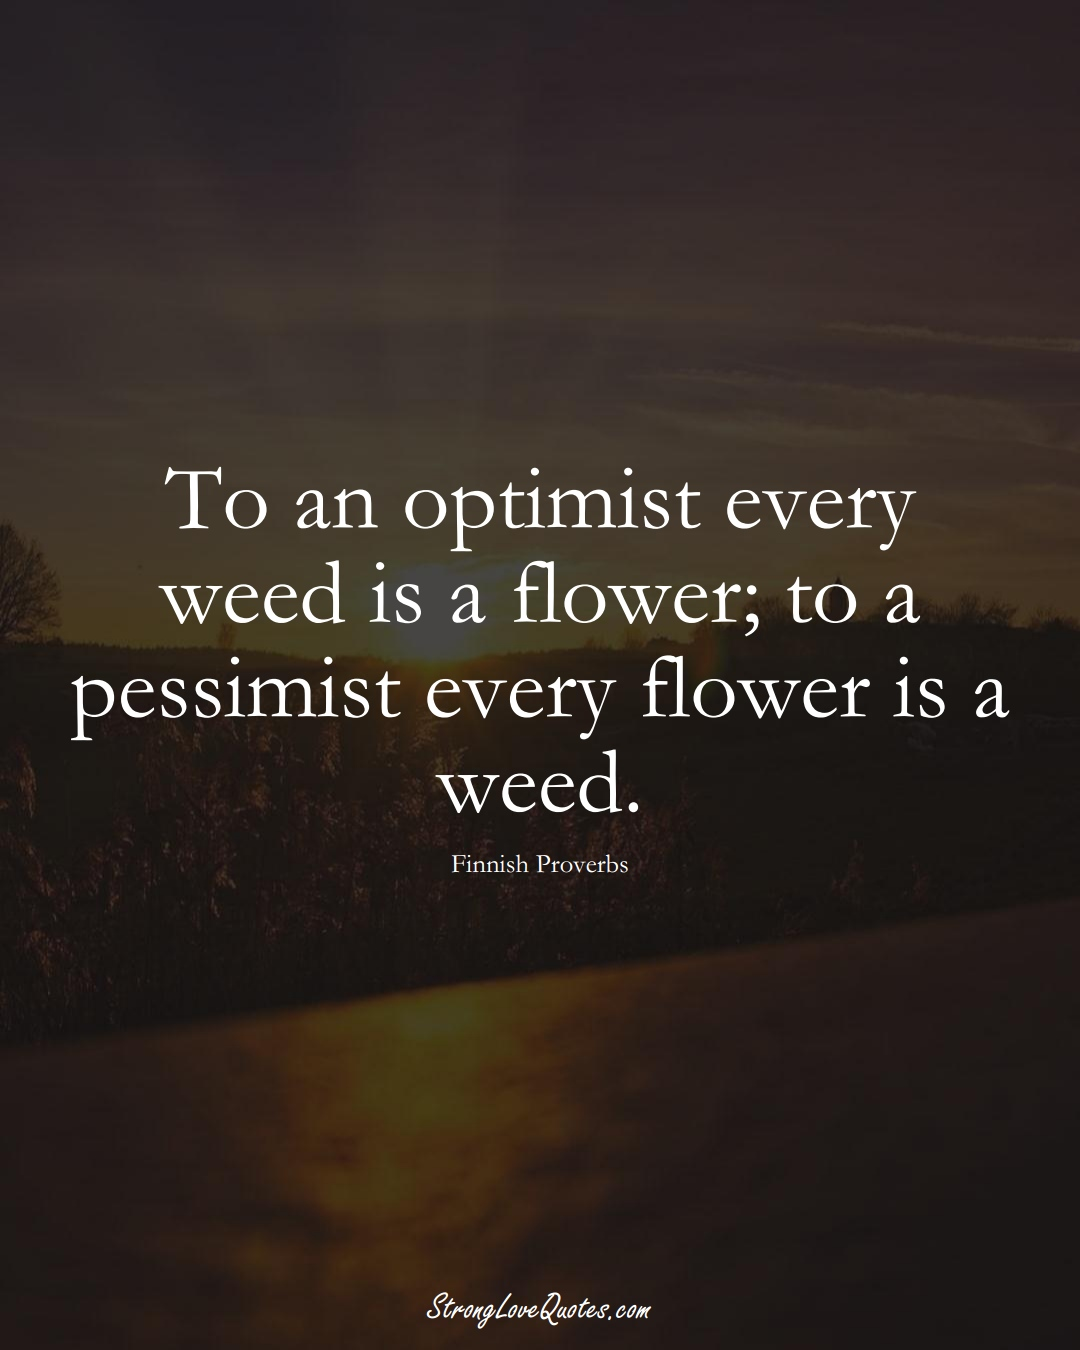 To an optimist every weed is a flower; to a pessimist every flower is a weed. (Finnish Sayings);  #EuropeanSayings